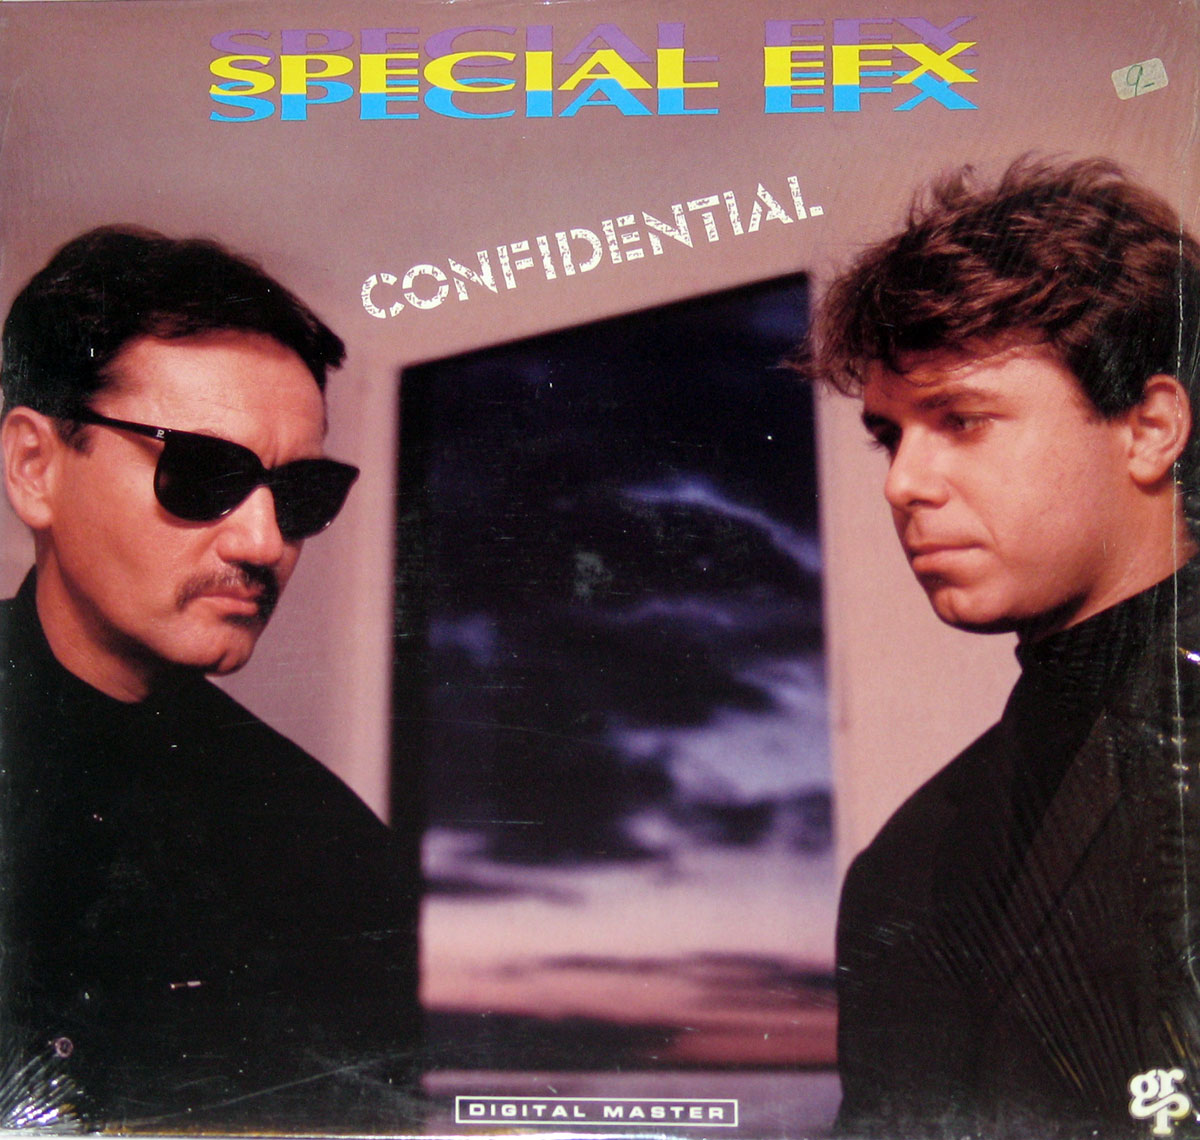 Photo of record 1 of Special EFX - Confidential